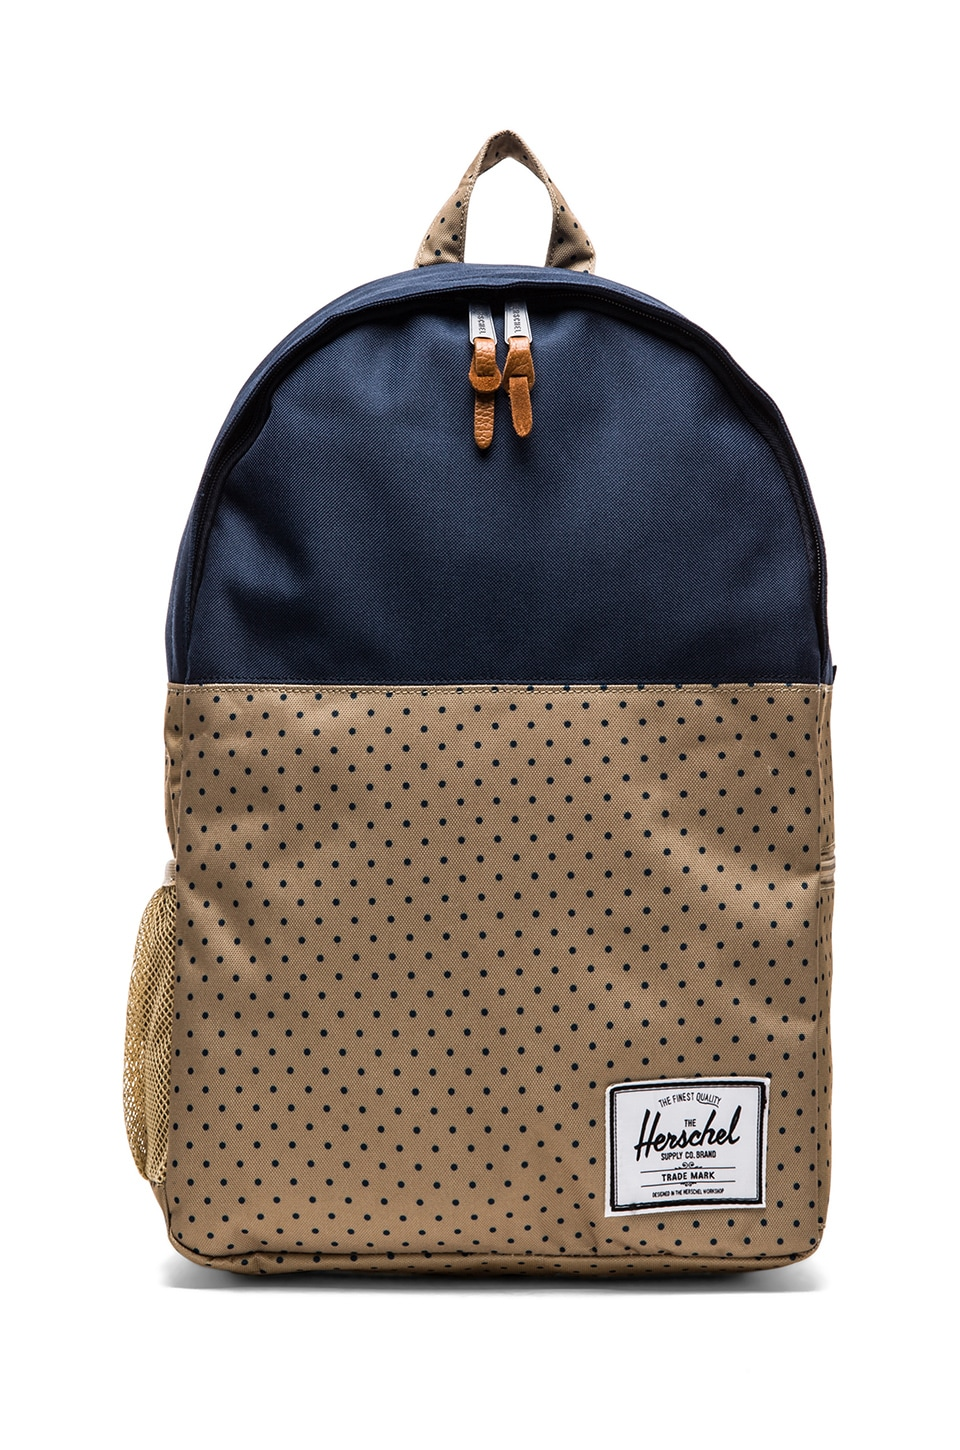 Herschel Supply Co. Jasper Backpack in Khaki Polka Dot & Navy